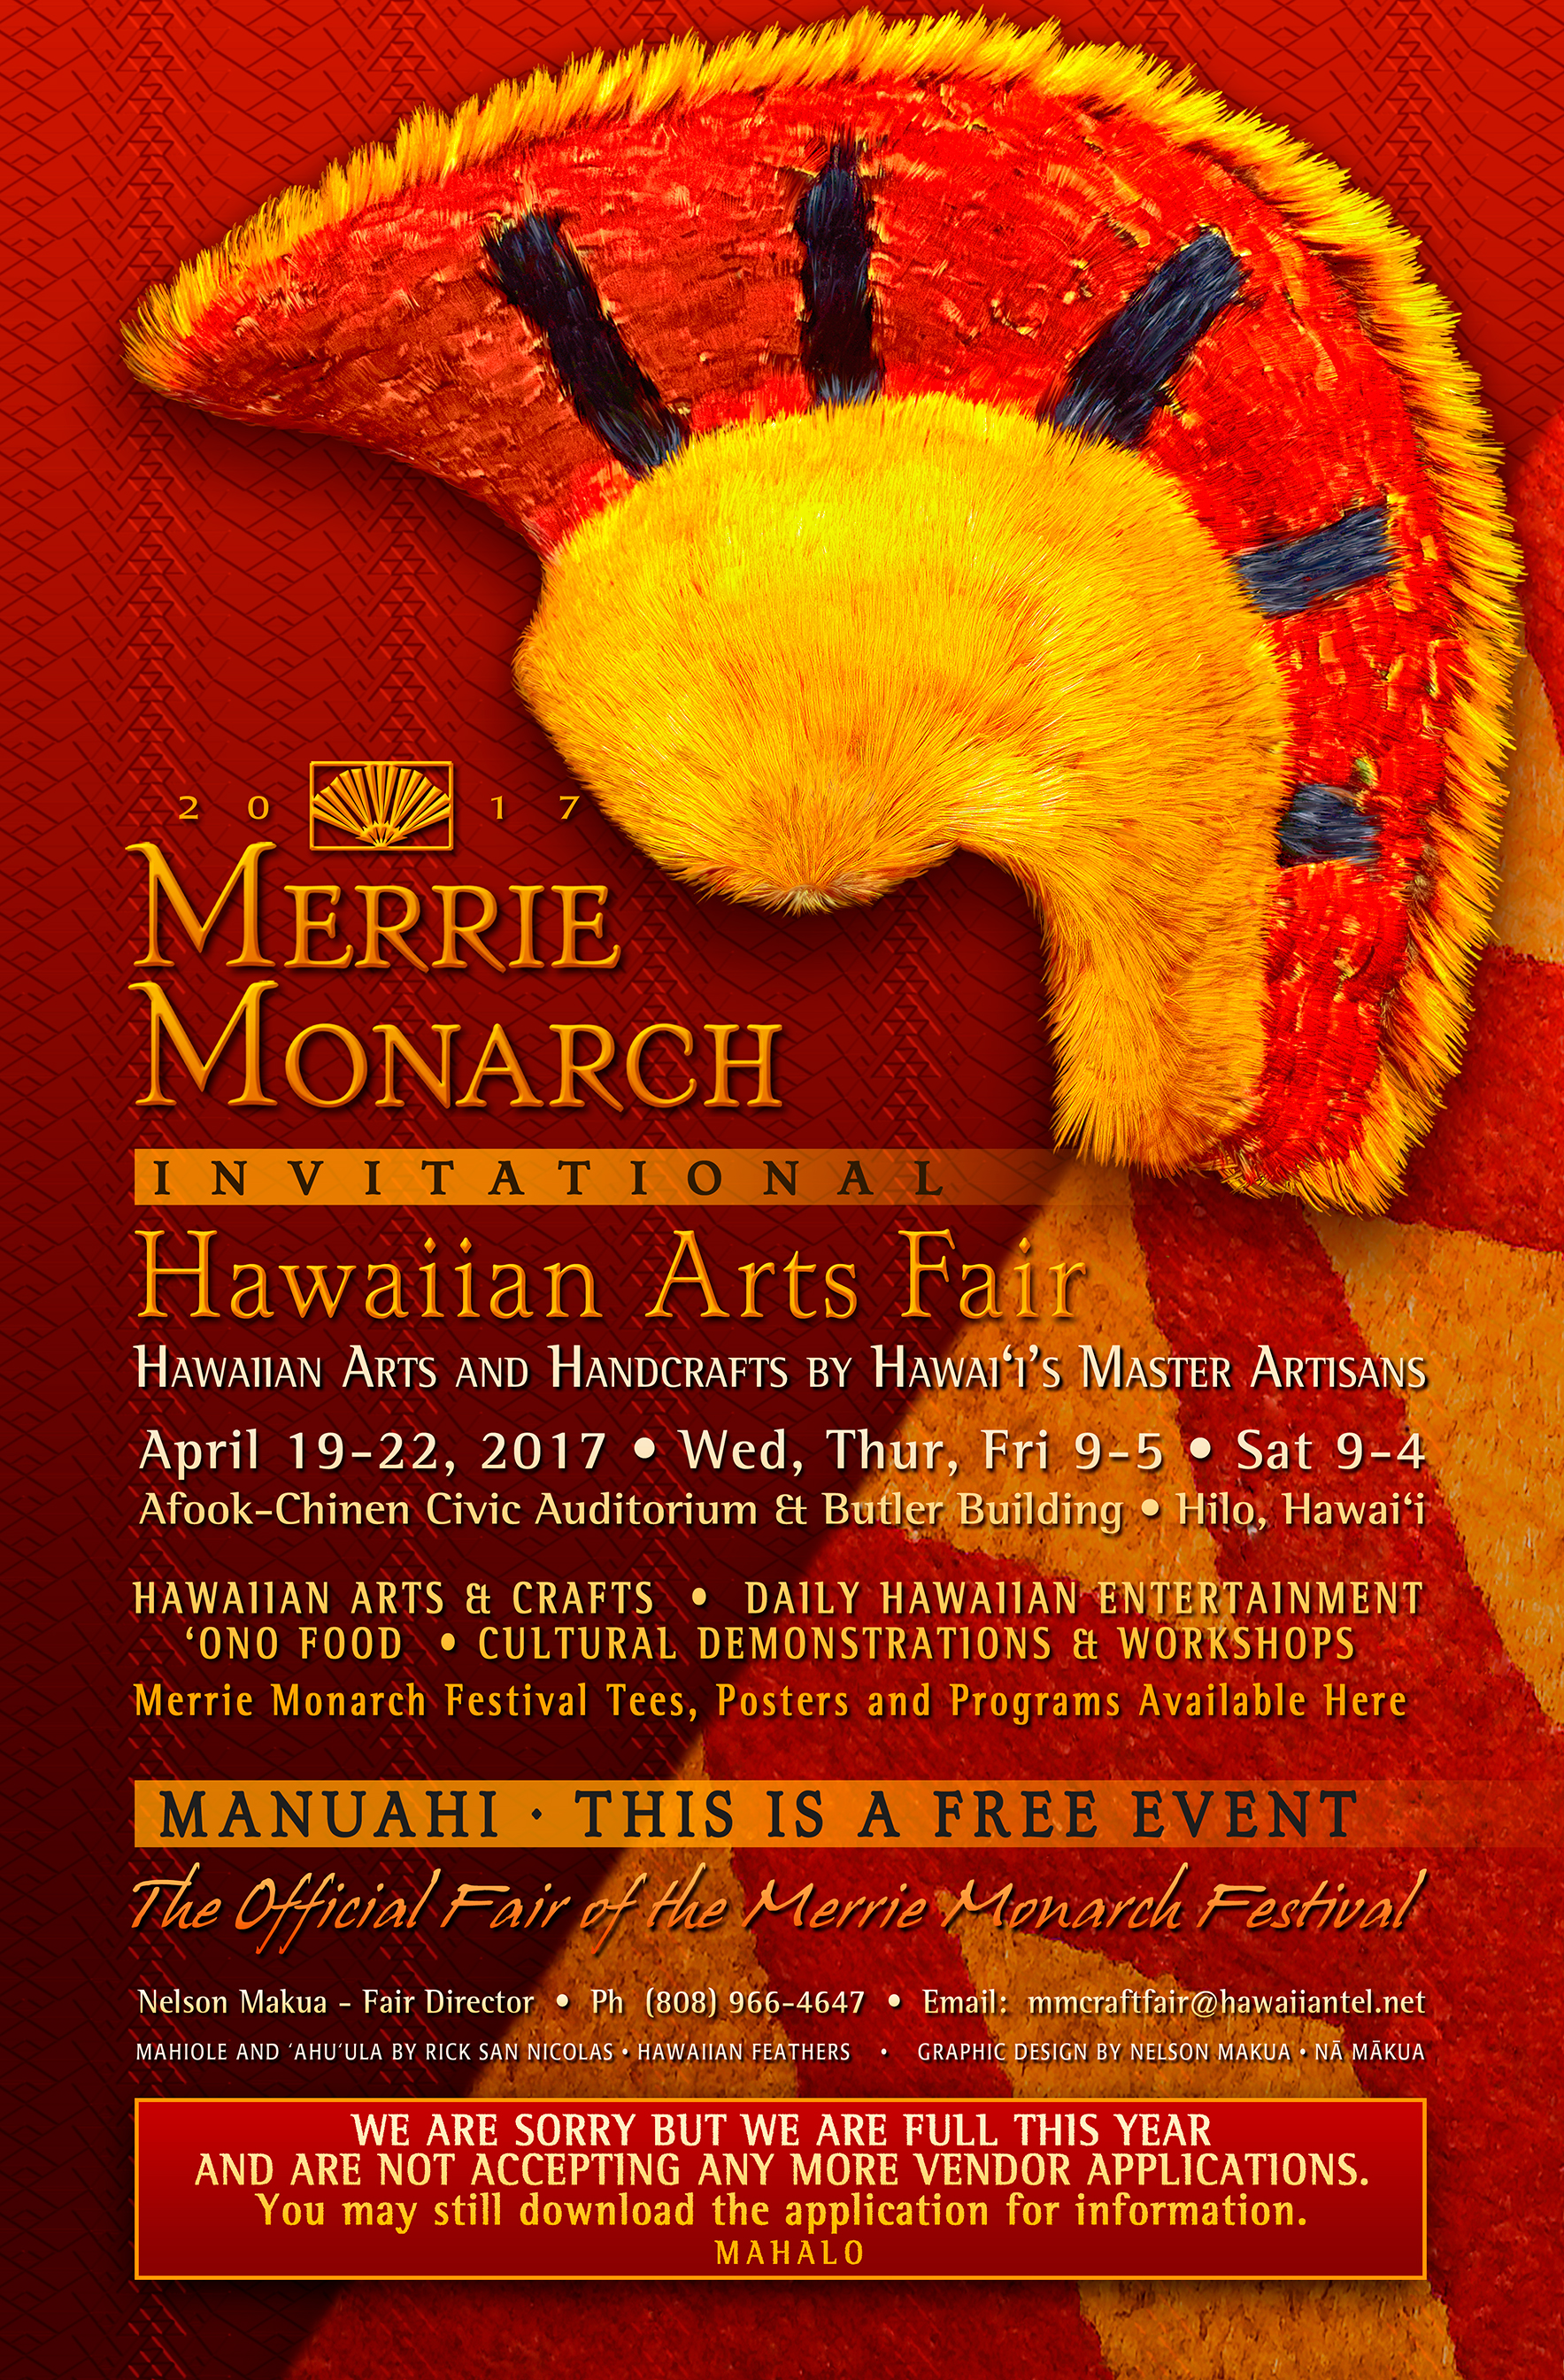 2017 MM Hawaiian Arts Fair Poster